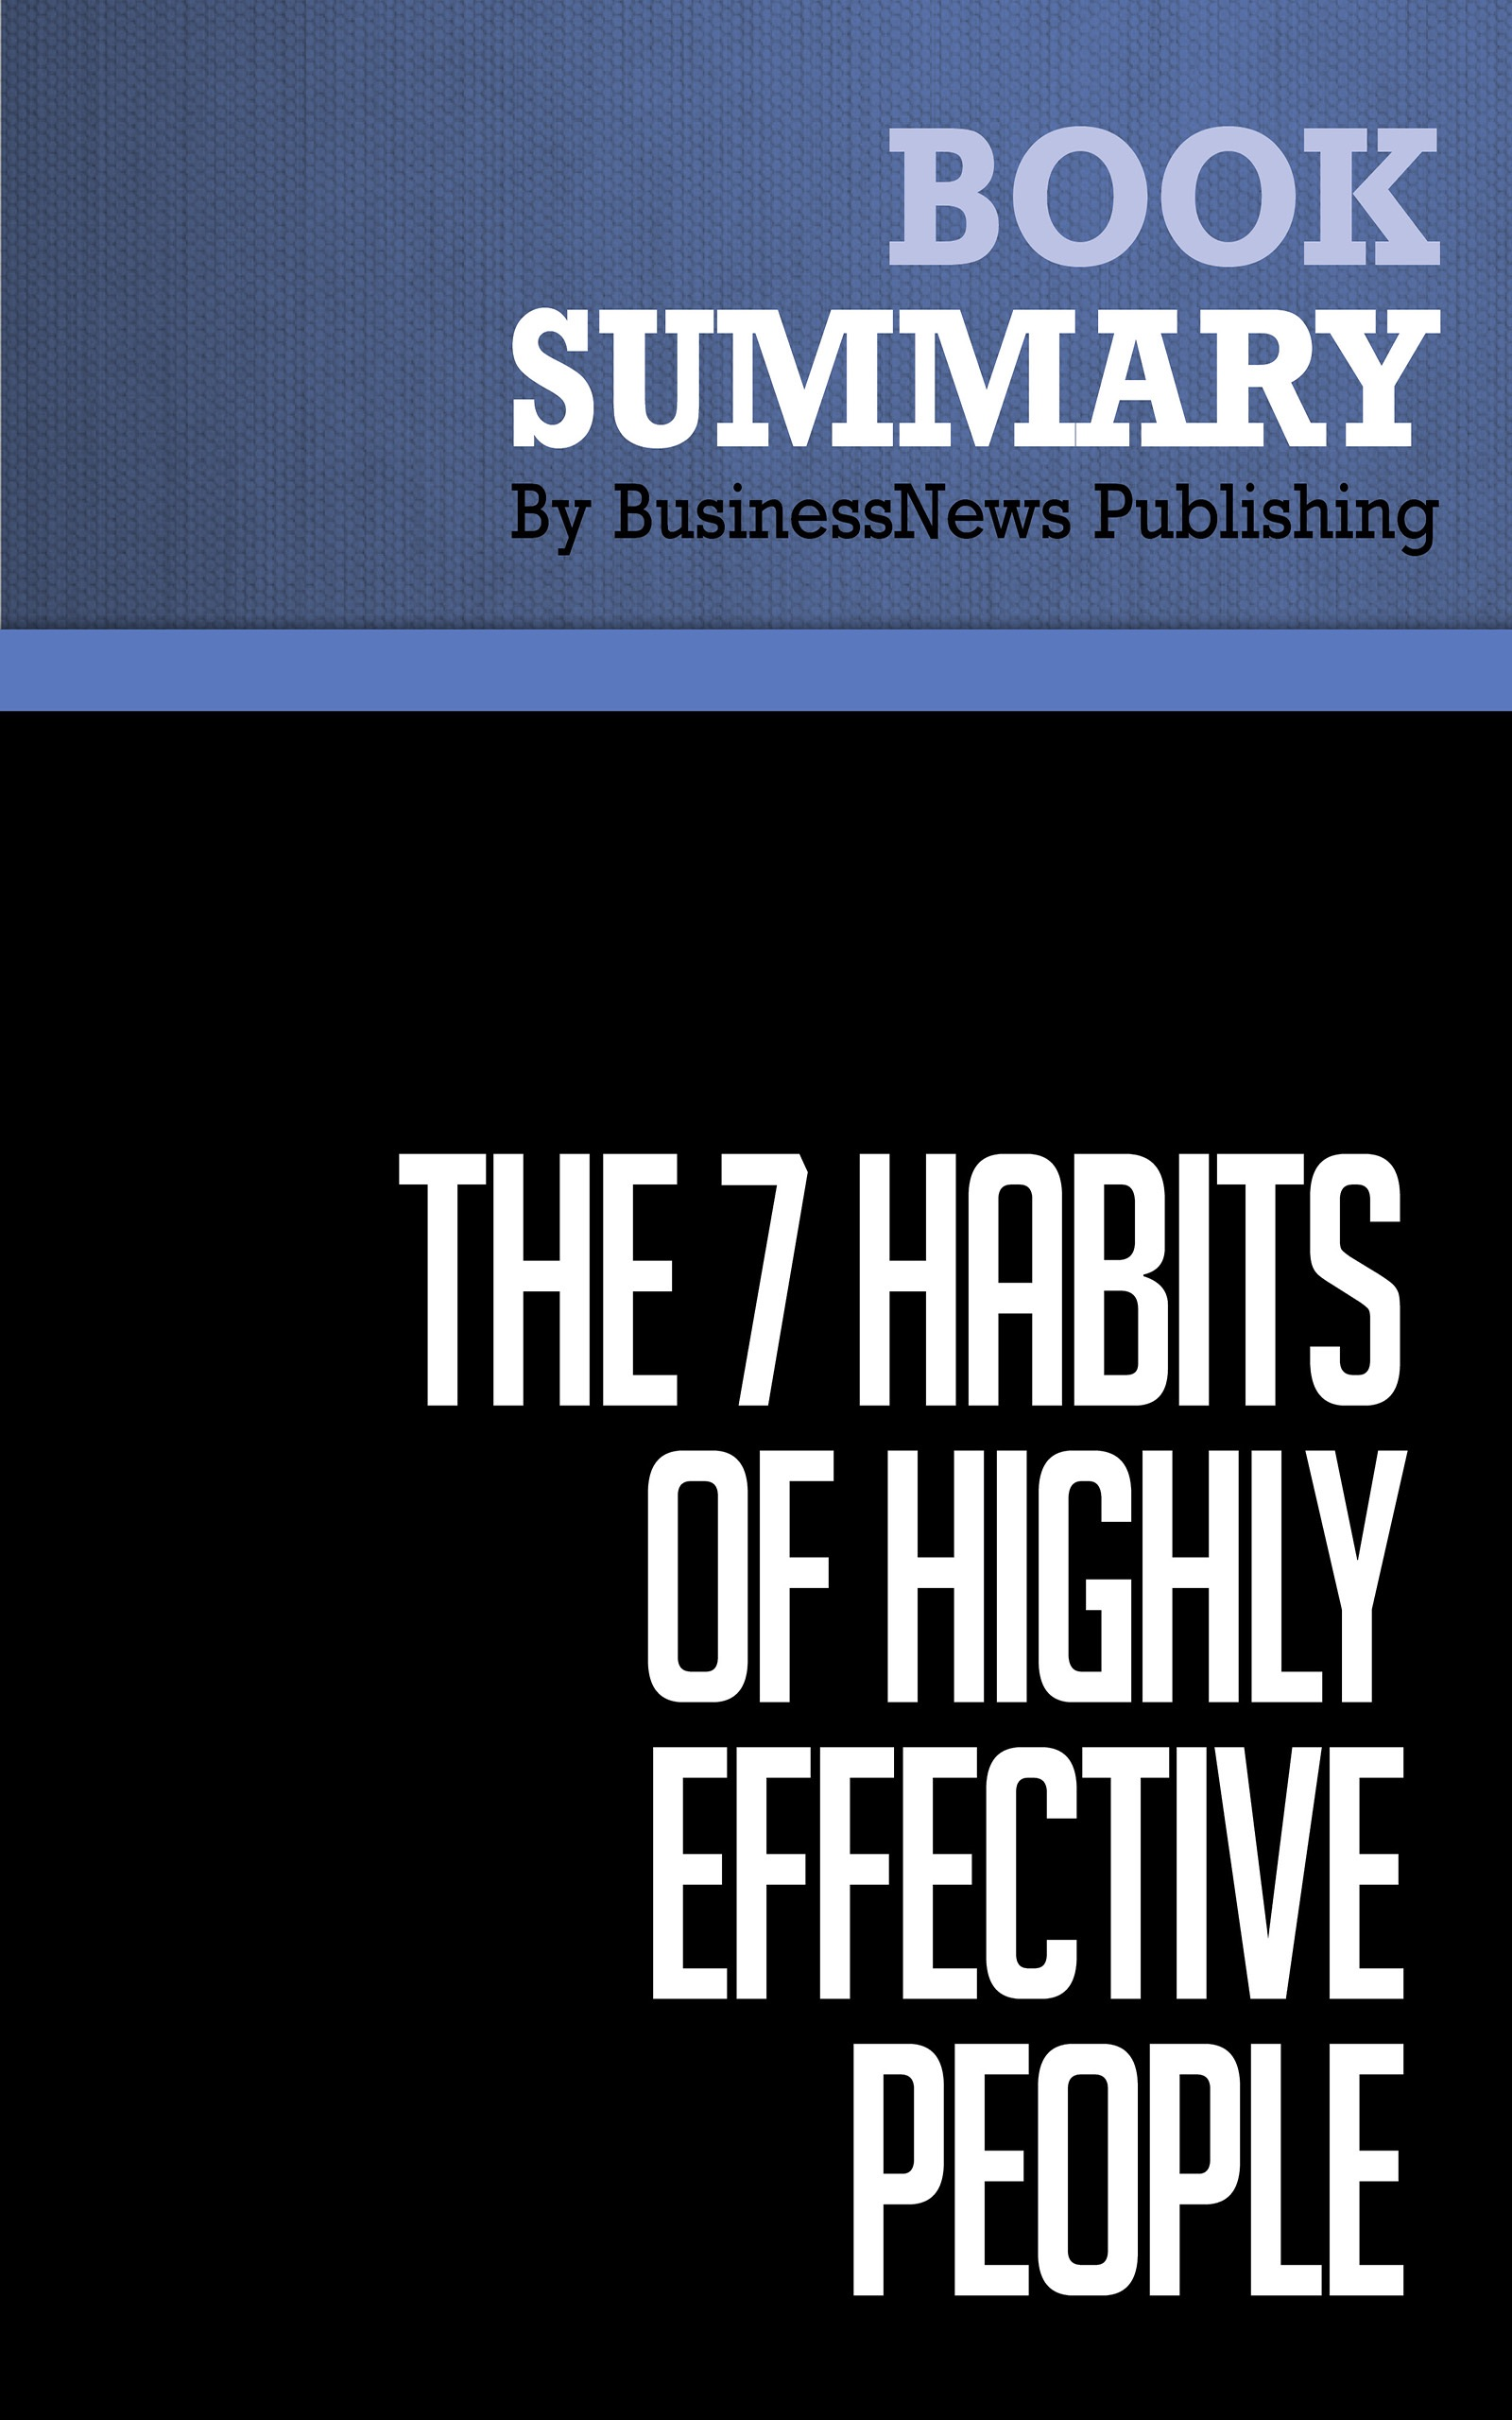 Summary of the 7 habits of